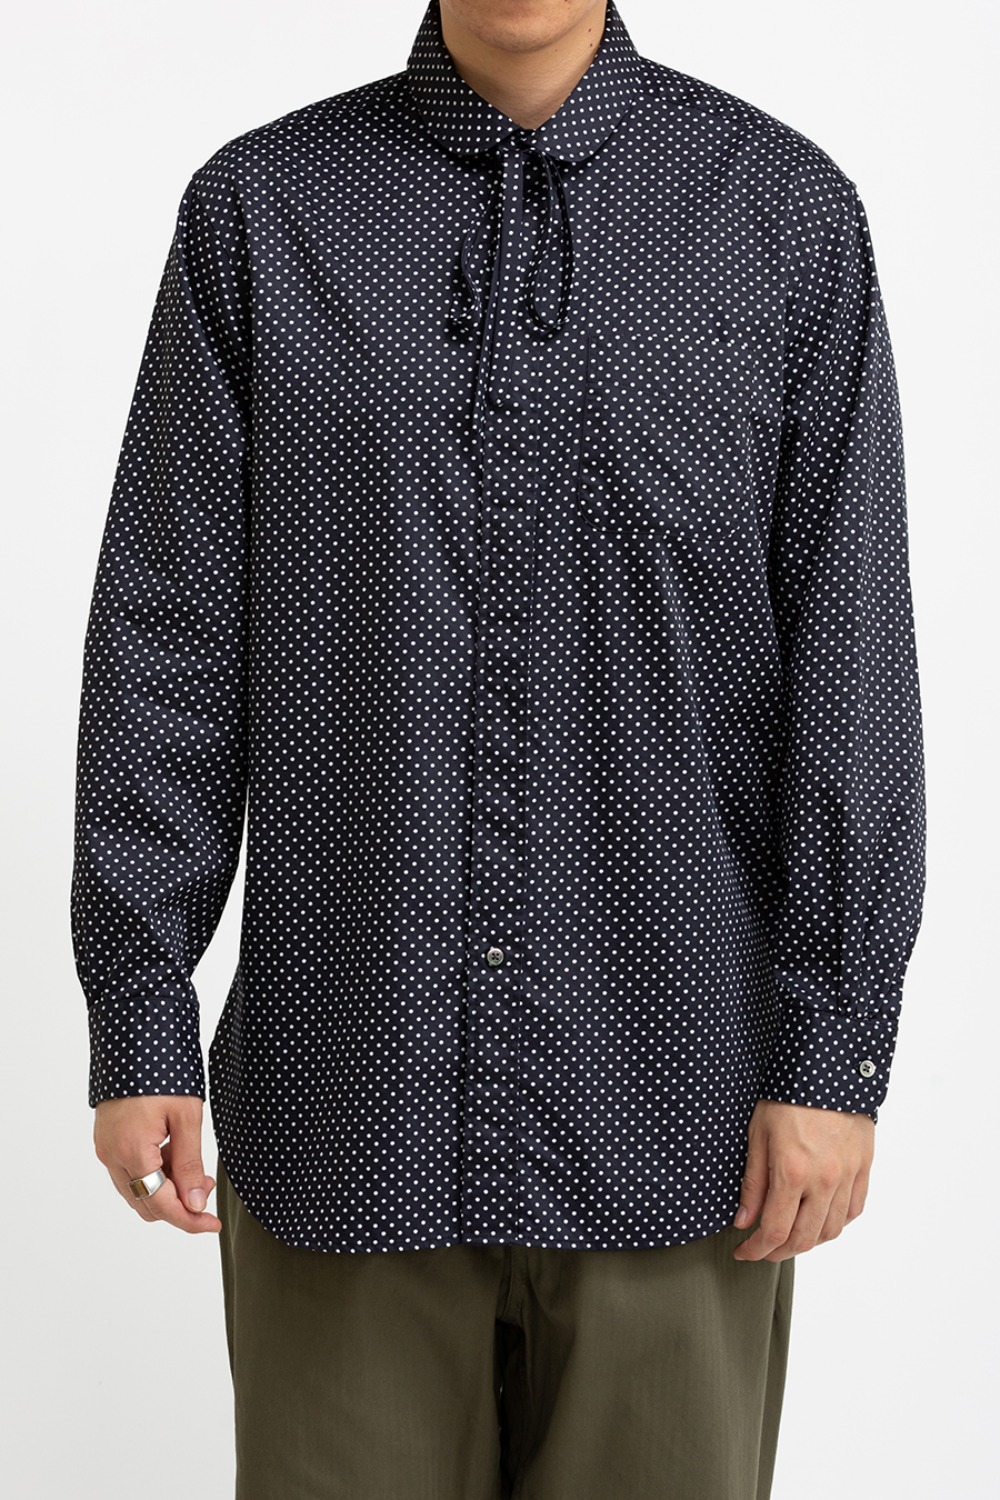 ROUNDED COLLAR SHIRT NAVY COTTON BIG POLKA DOT